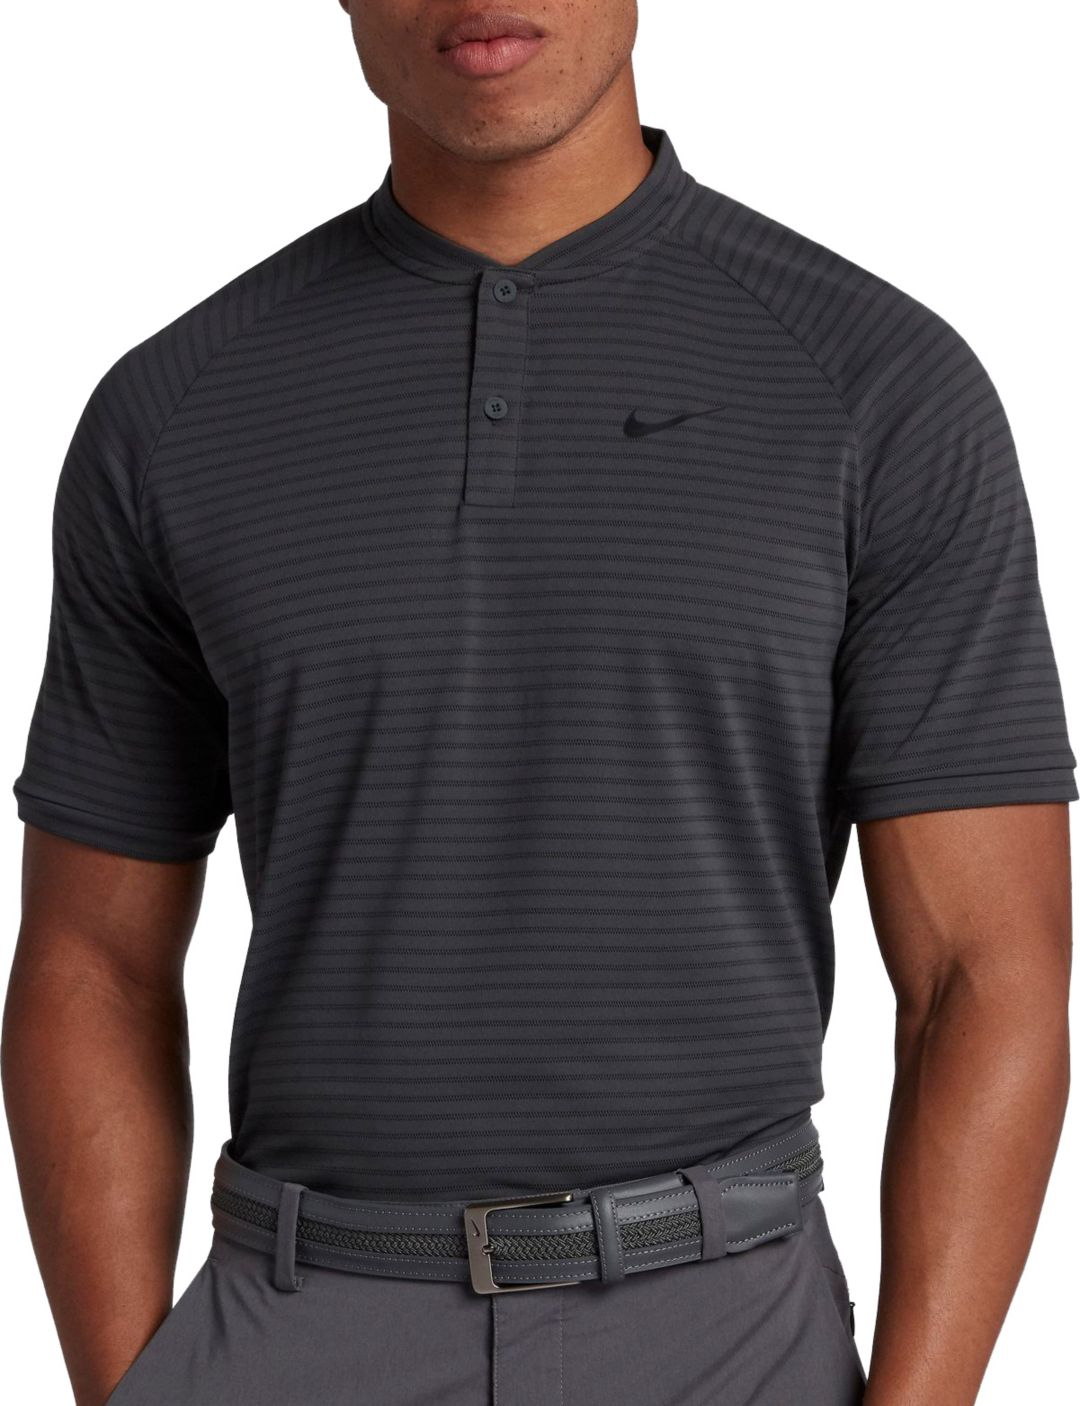 18949cfe Nike Men's Tiger Woods Thin Stripe Zonal Cooling Golf Polo | DICK'S ...